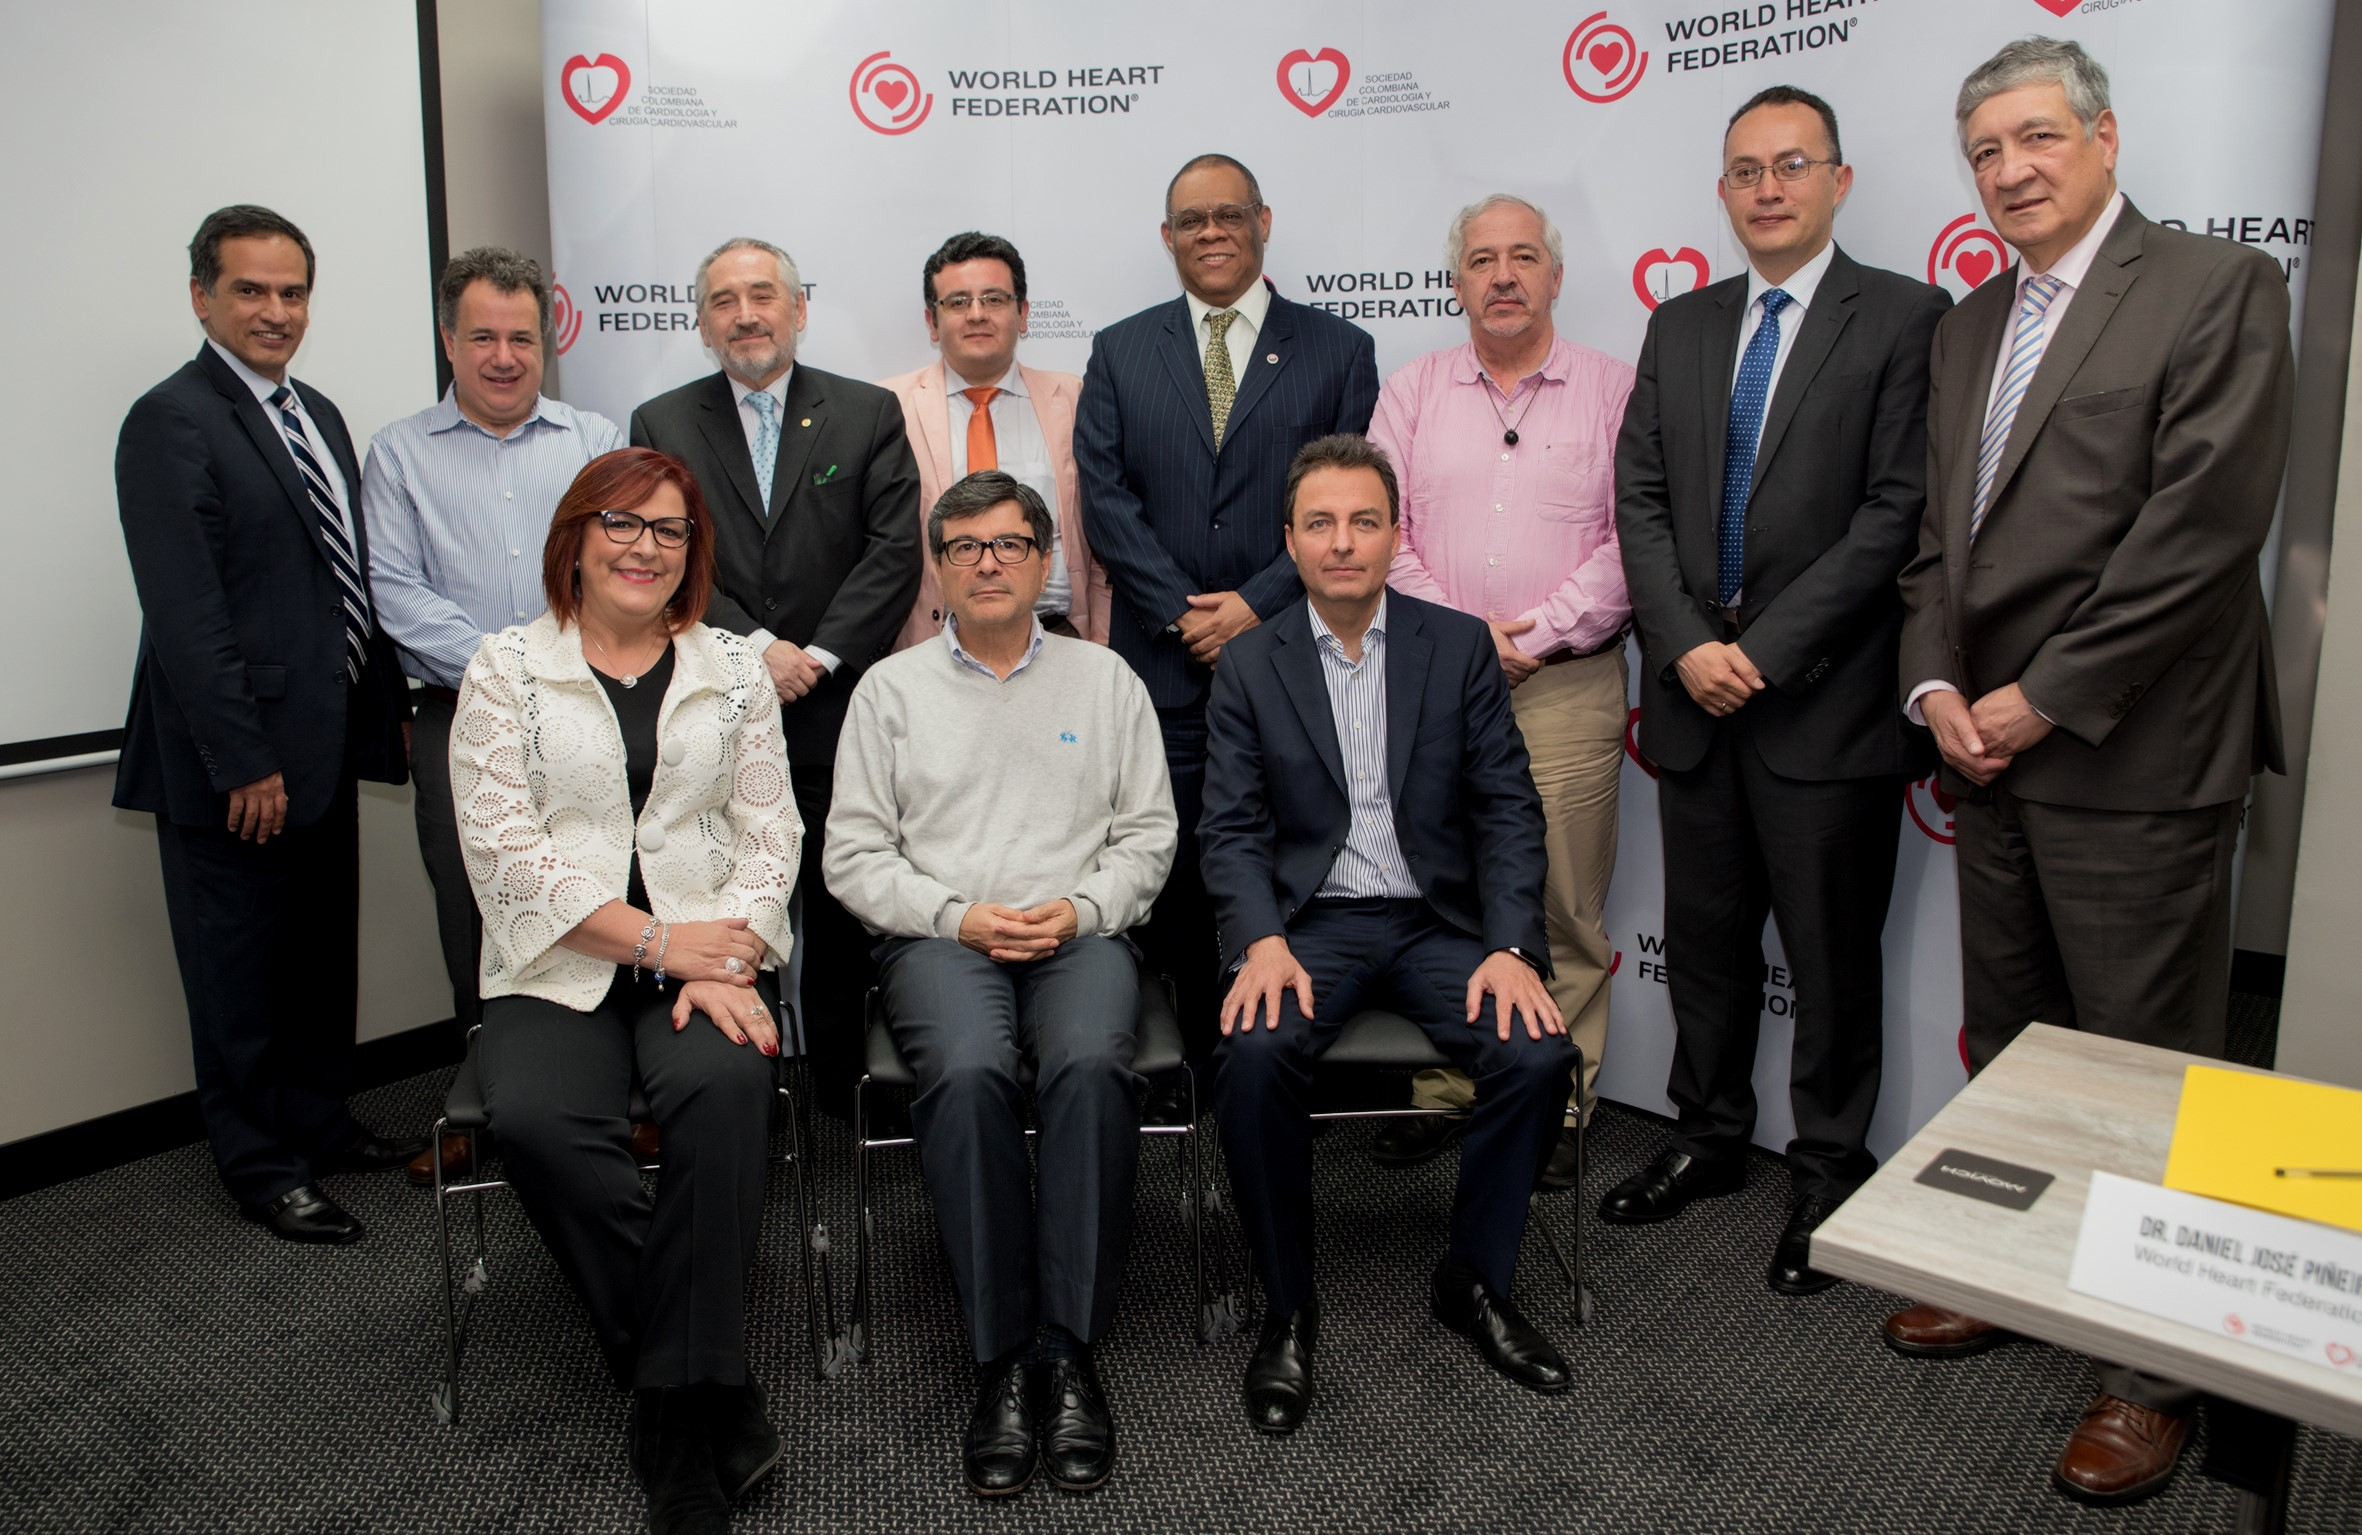 Whf And Colombian Society Of Cardiology And Cardiovascular Surgery Hold A Cholesterol Roundtable In Colombia World Heart Federation